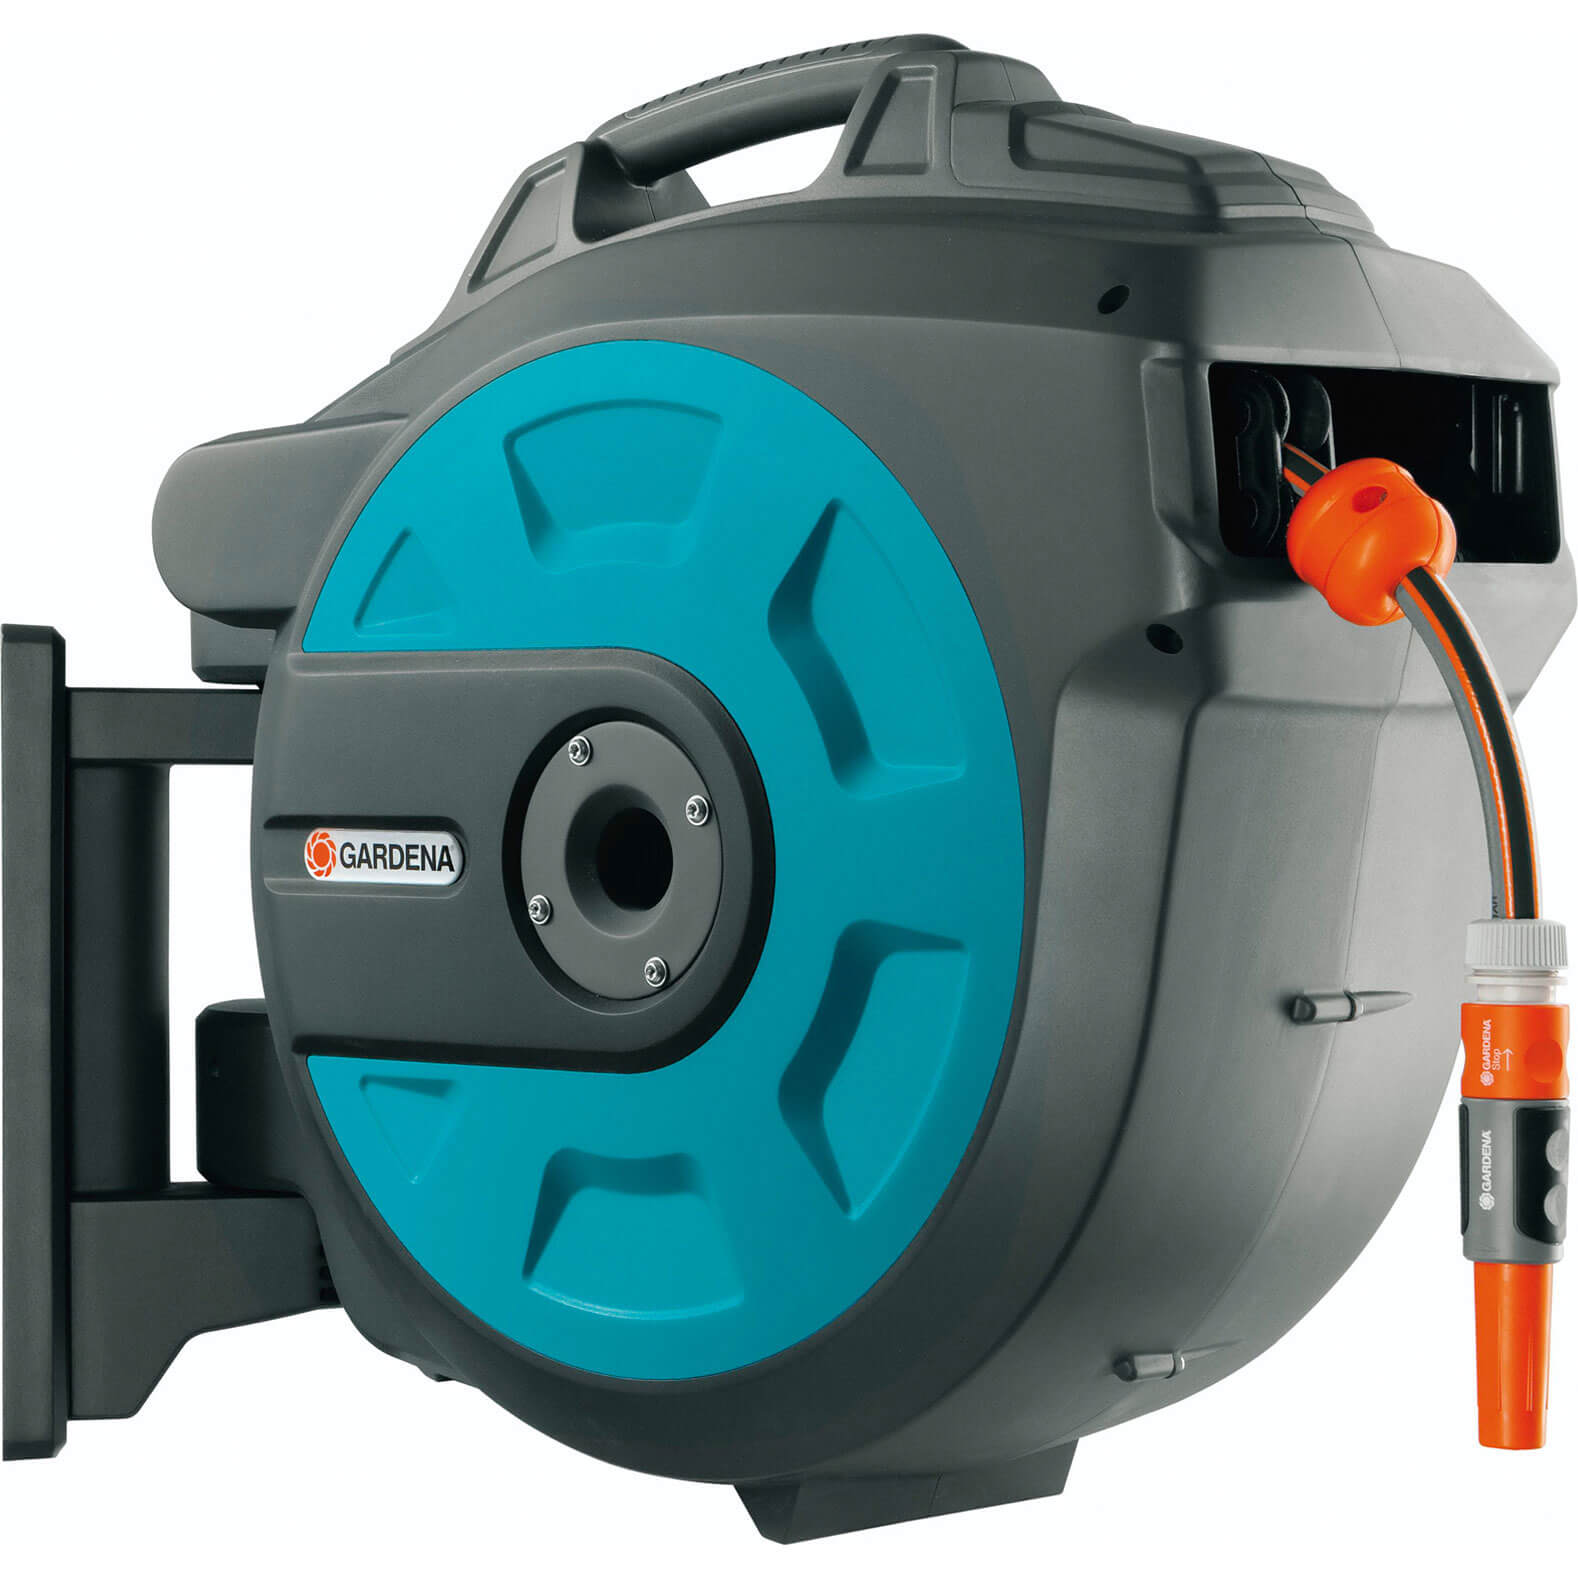 Gardena 25 Metre Wall Mounted Auto Hose Reel with 25 Metre Hose Pipe 12.5mm (1/2&quot)